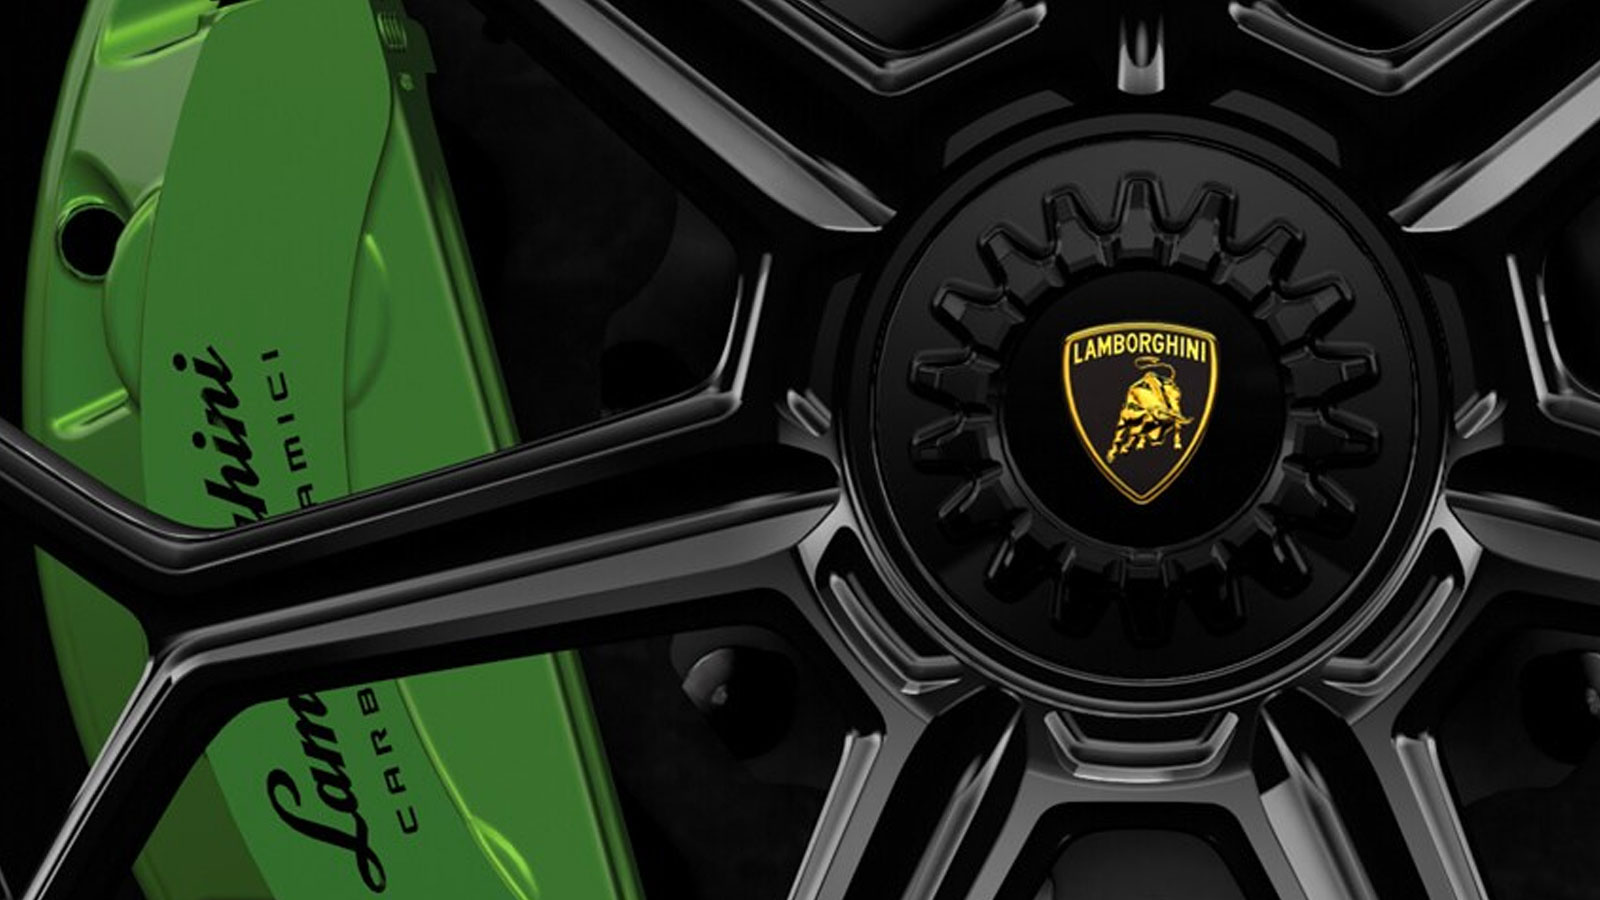 Lamborghini Aventador SVJ Coupe - Real Emotions Shape The Future image 16